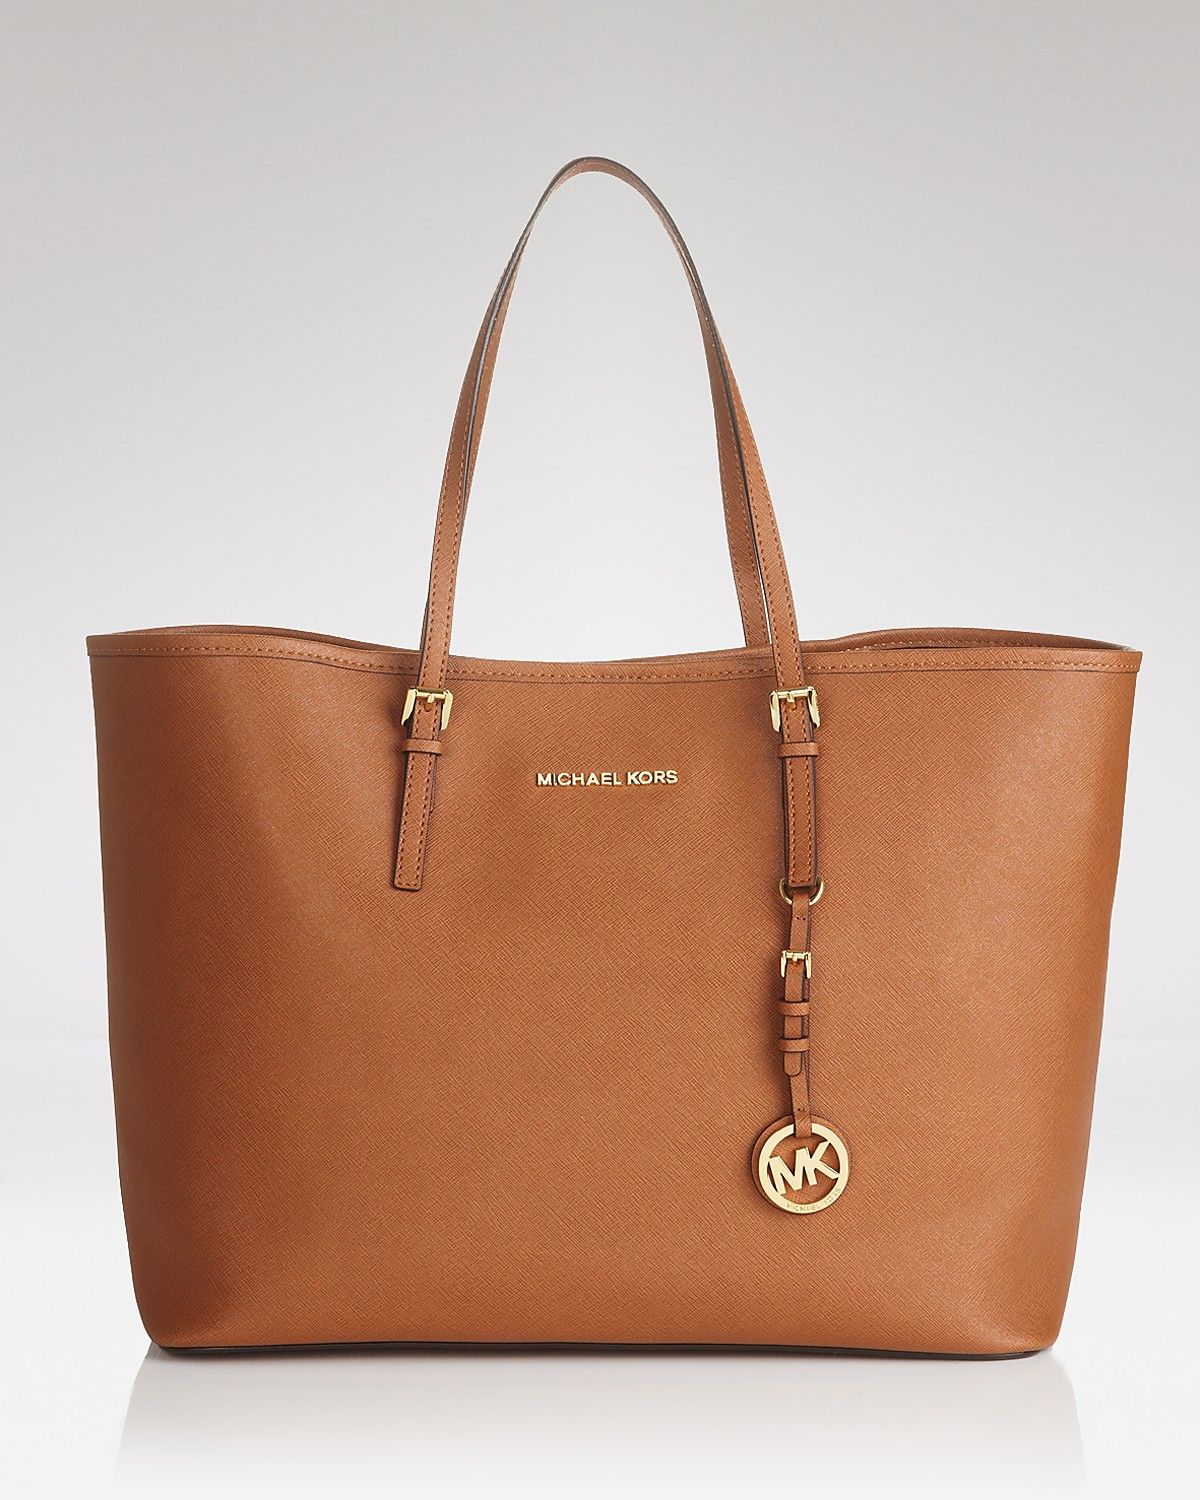 24344056d8c6 MICHAEL Michael Kors Tote - Jet Set Travel - All Handbags - Handbags -  Handbags - Bloomingdale s. ""